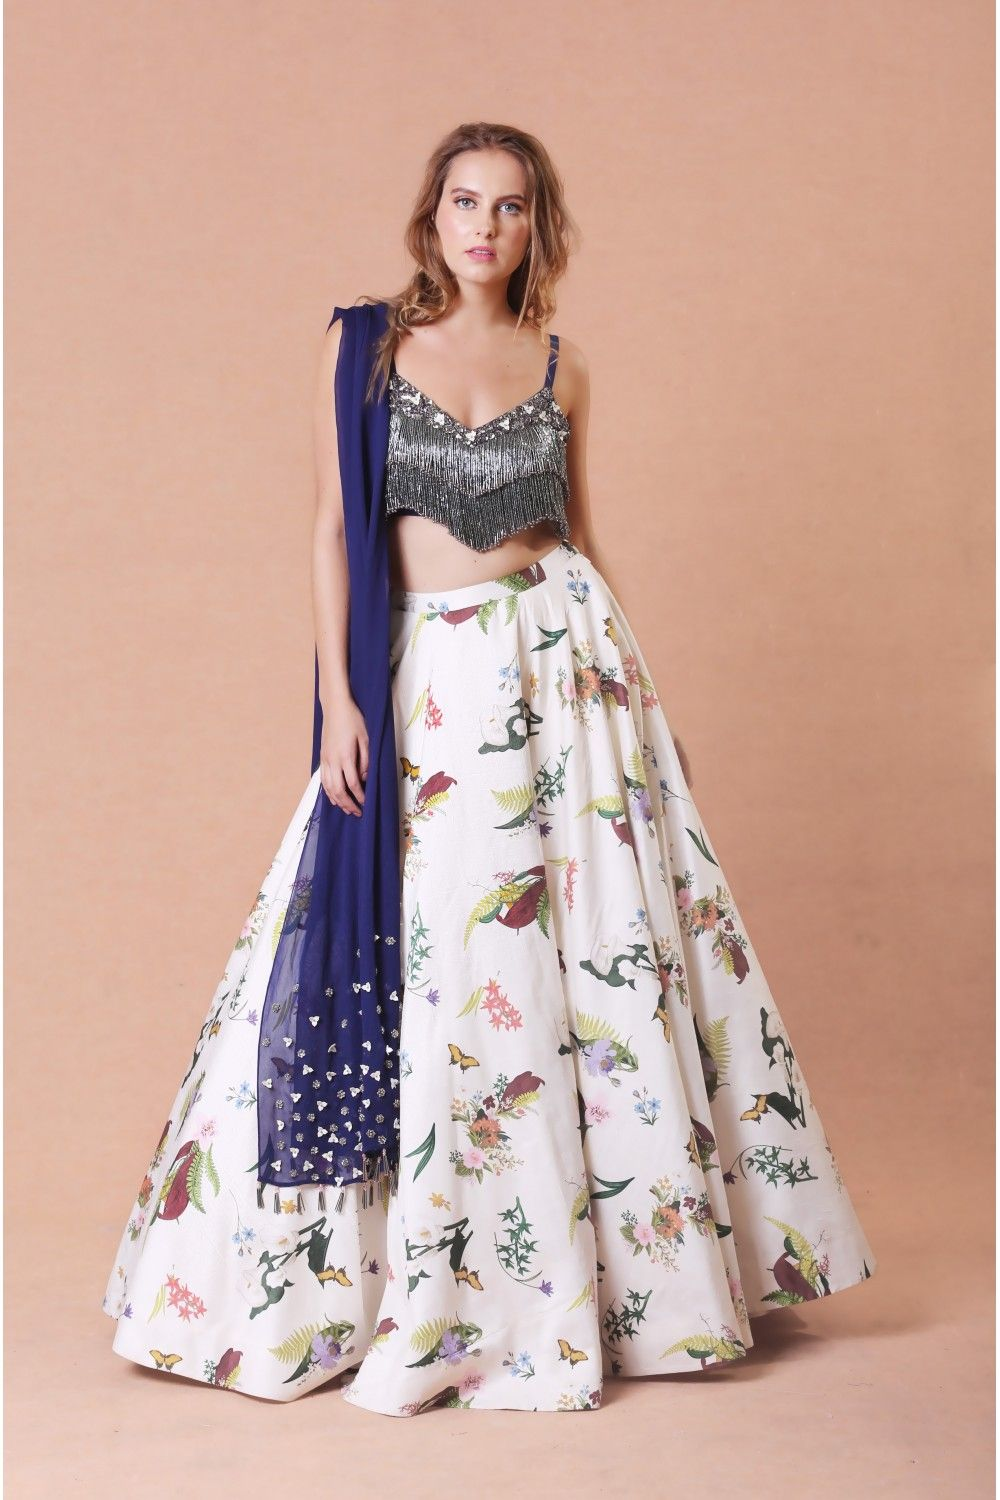 27+ Wedding gown dry cleaning price info